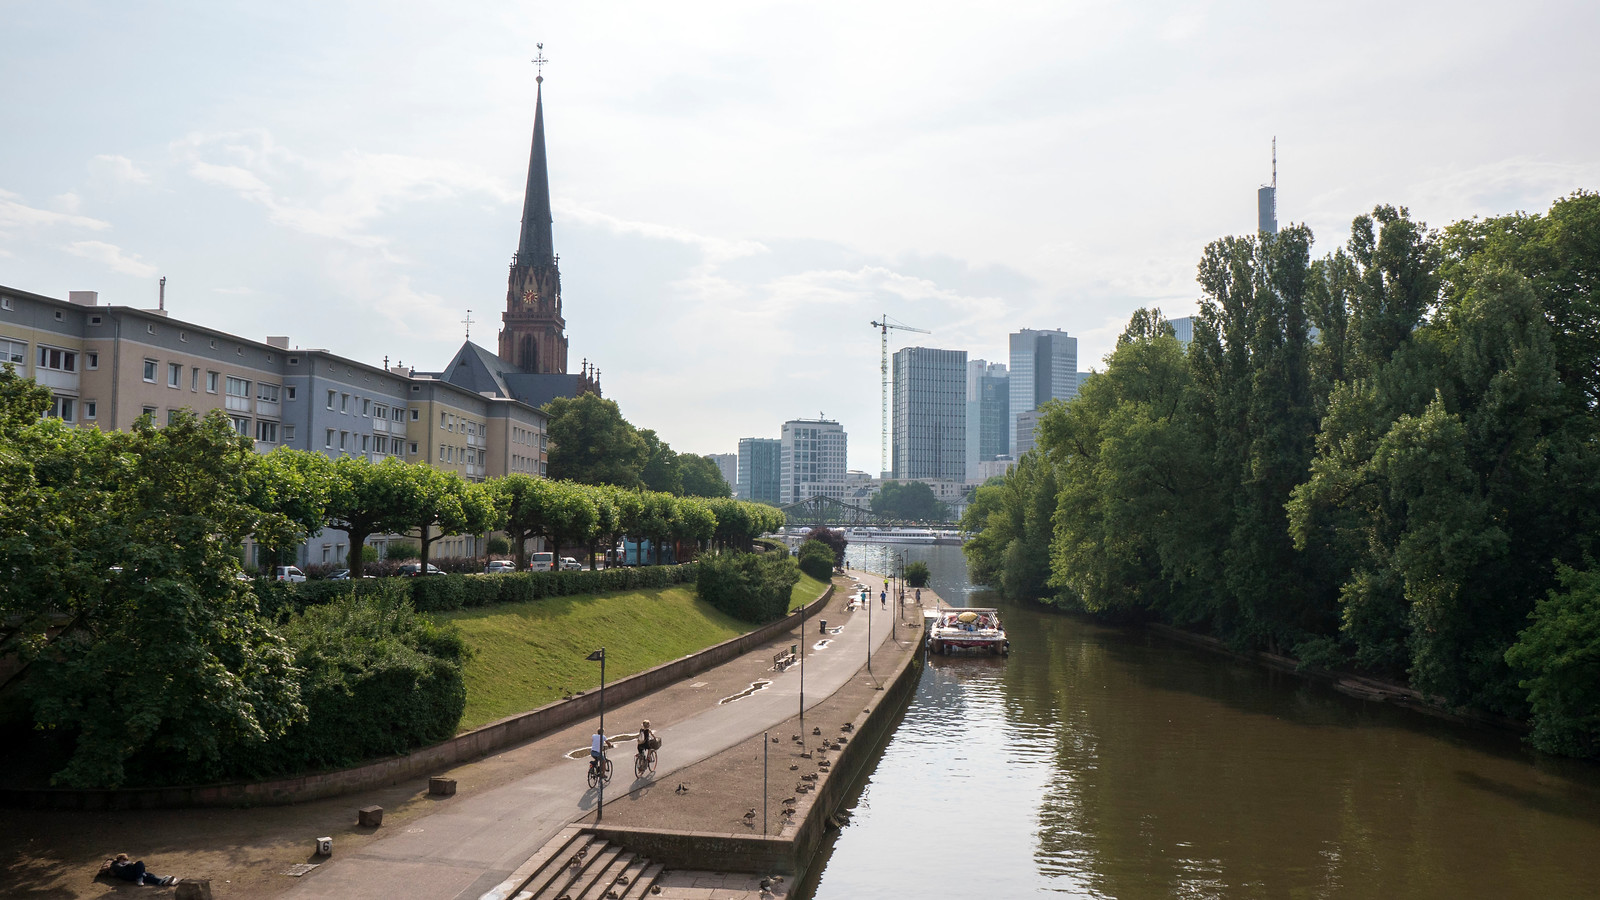 Things to Do in Frankfurt for a Day - 1 Day in Frankfurt